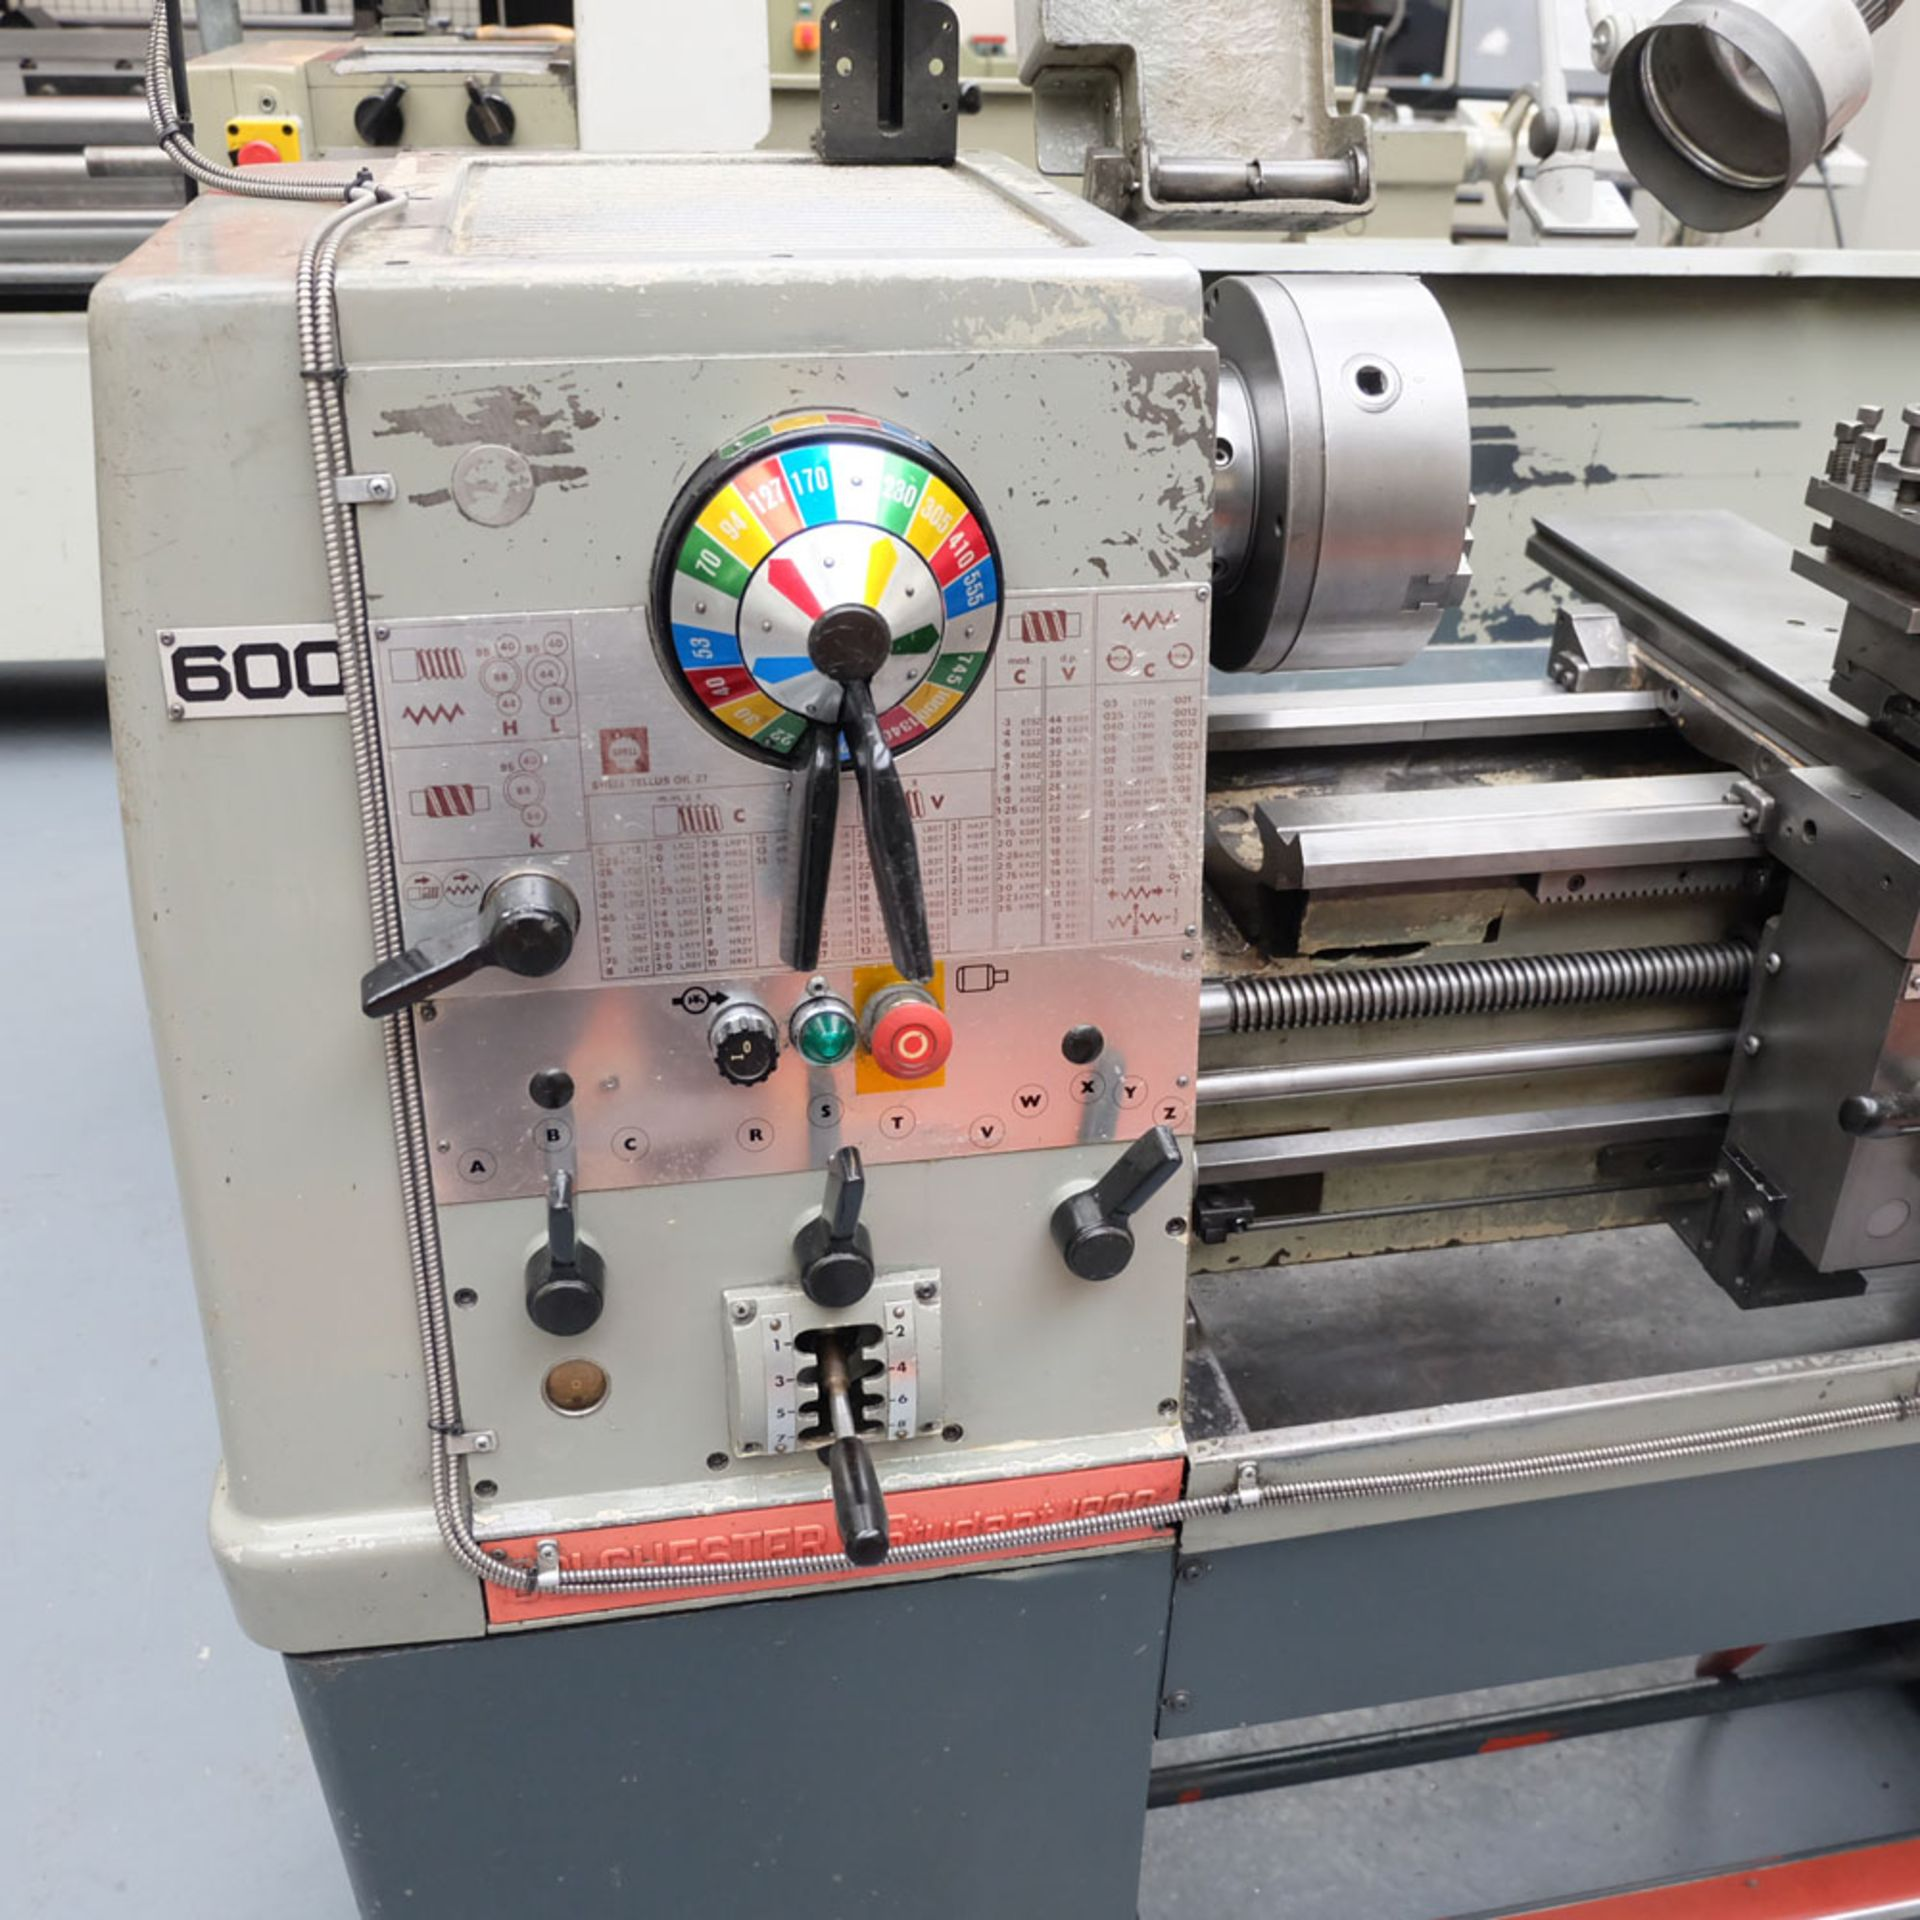 Colchester Student 1800 Gap Bed Centre Lathe. - Image 3 of 8